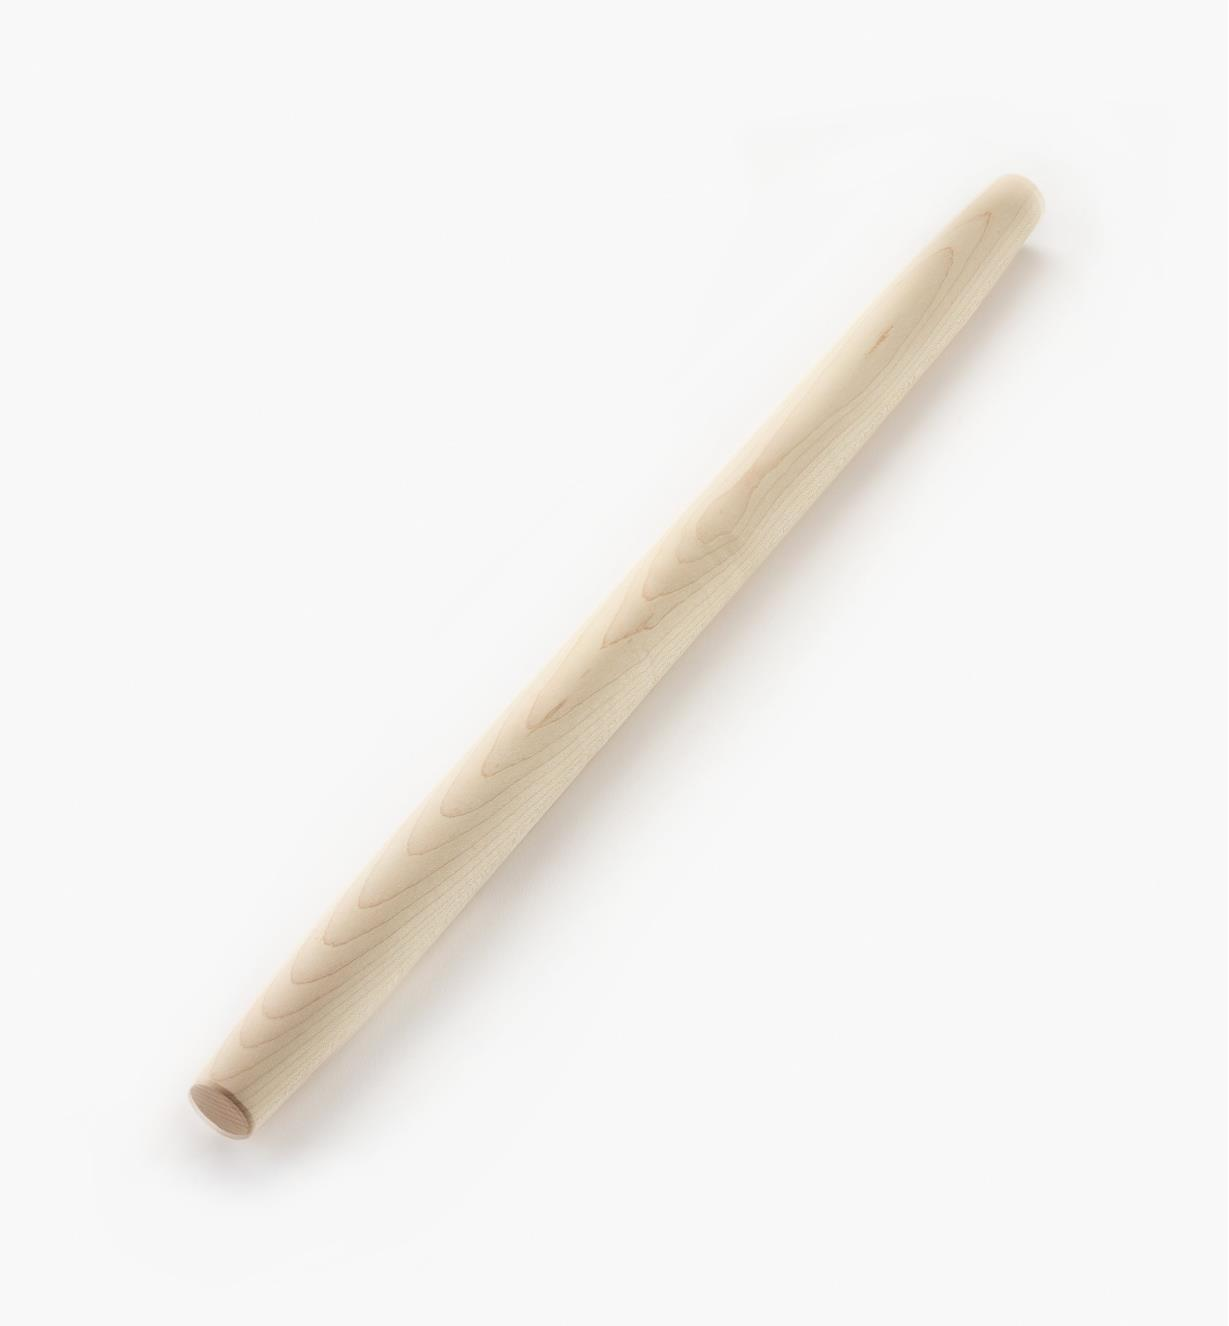 09A0398 - French-Style Rolling Pin